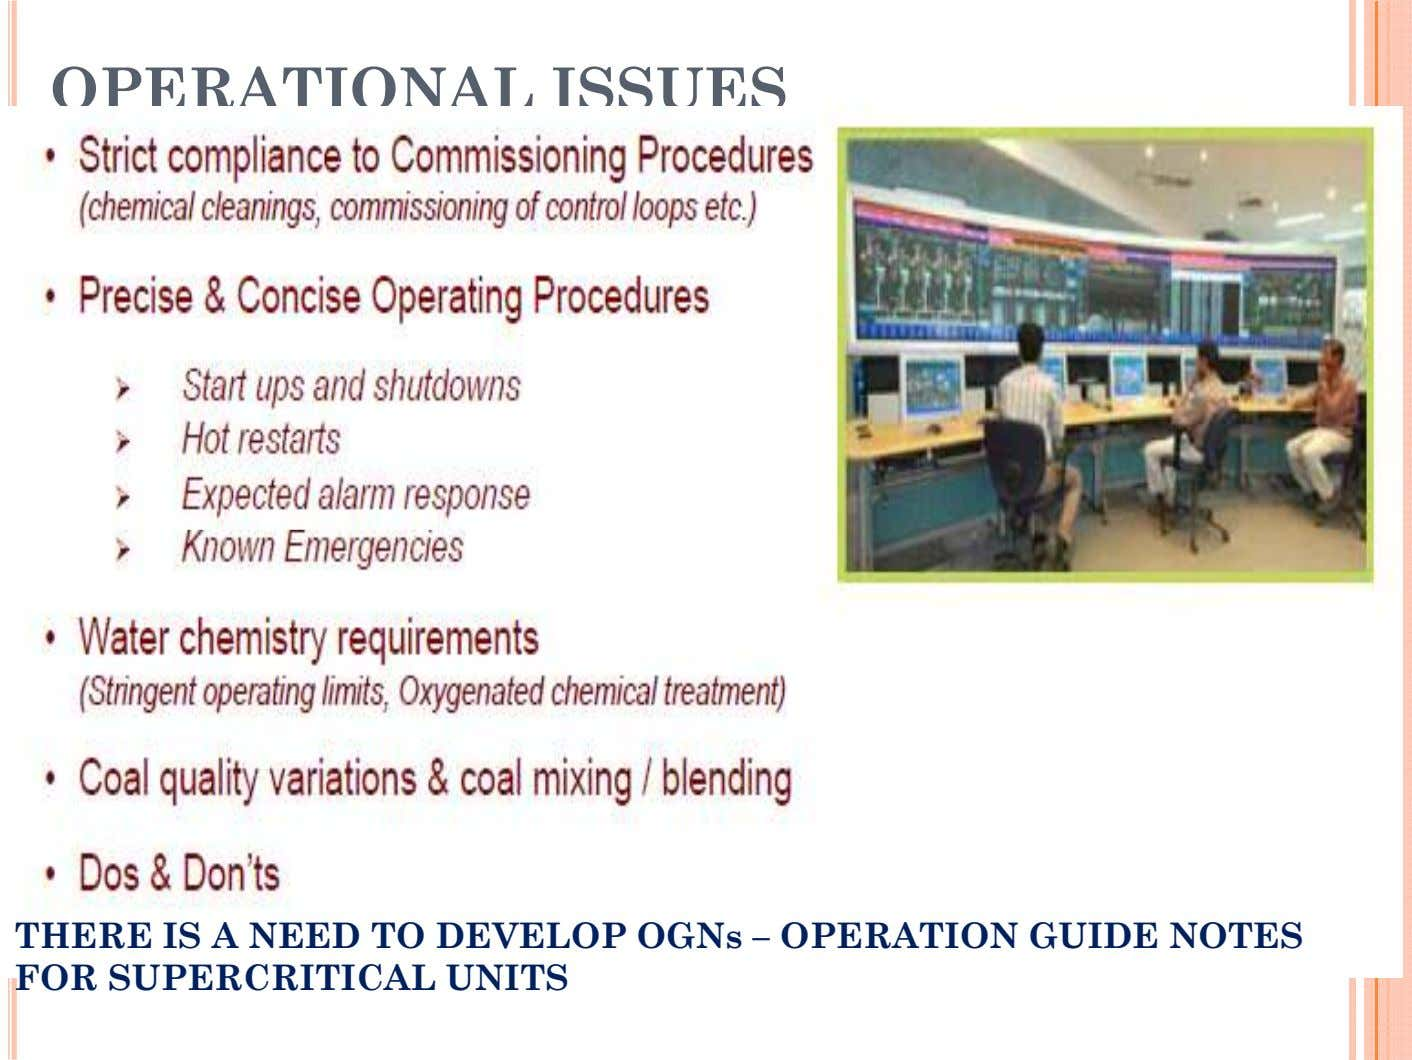 OPERATIONAL ISSUES THERE IS A NEED TO DEVELOP OGNs – OPERATION GUIDE NOTES FOR SUPERCRITICAL UNITS